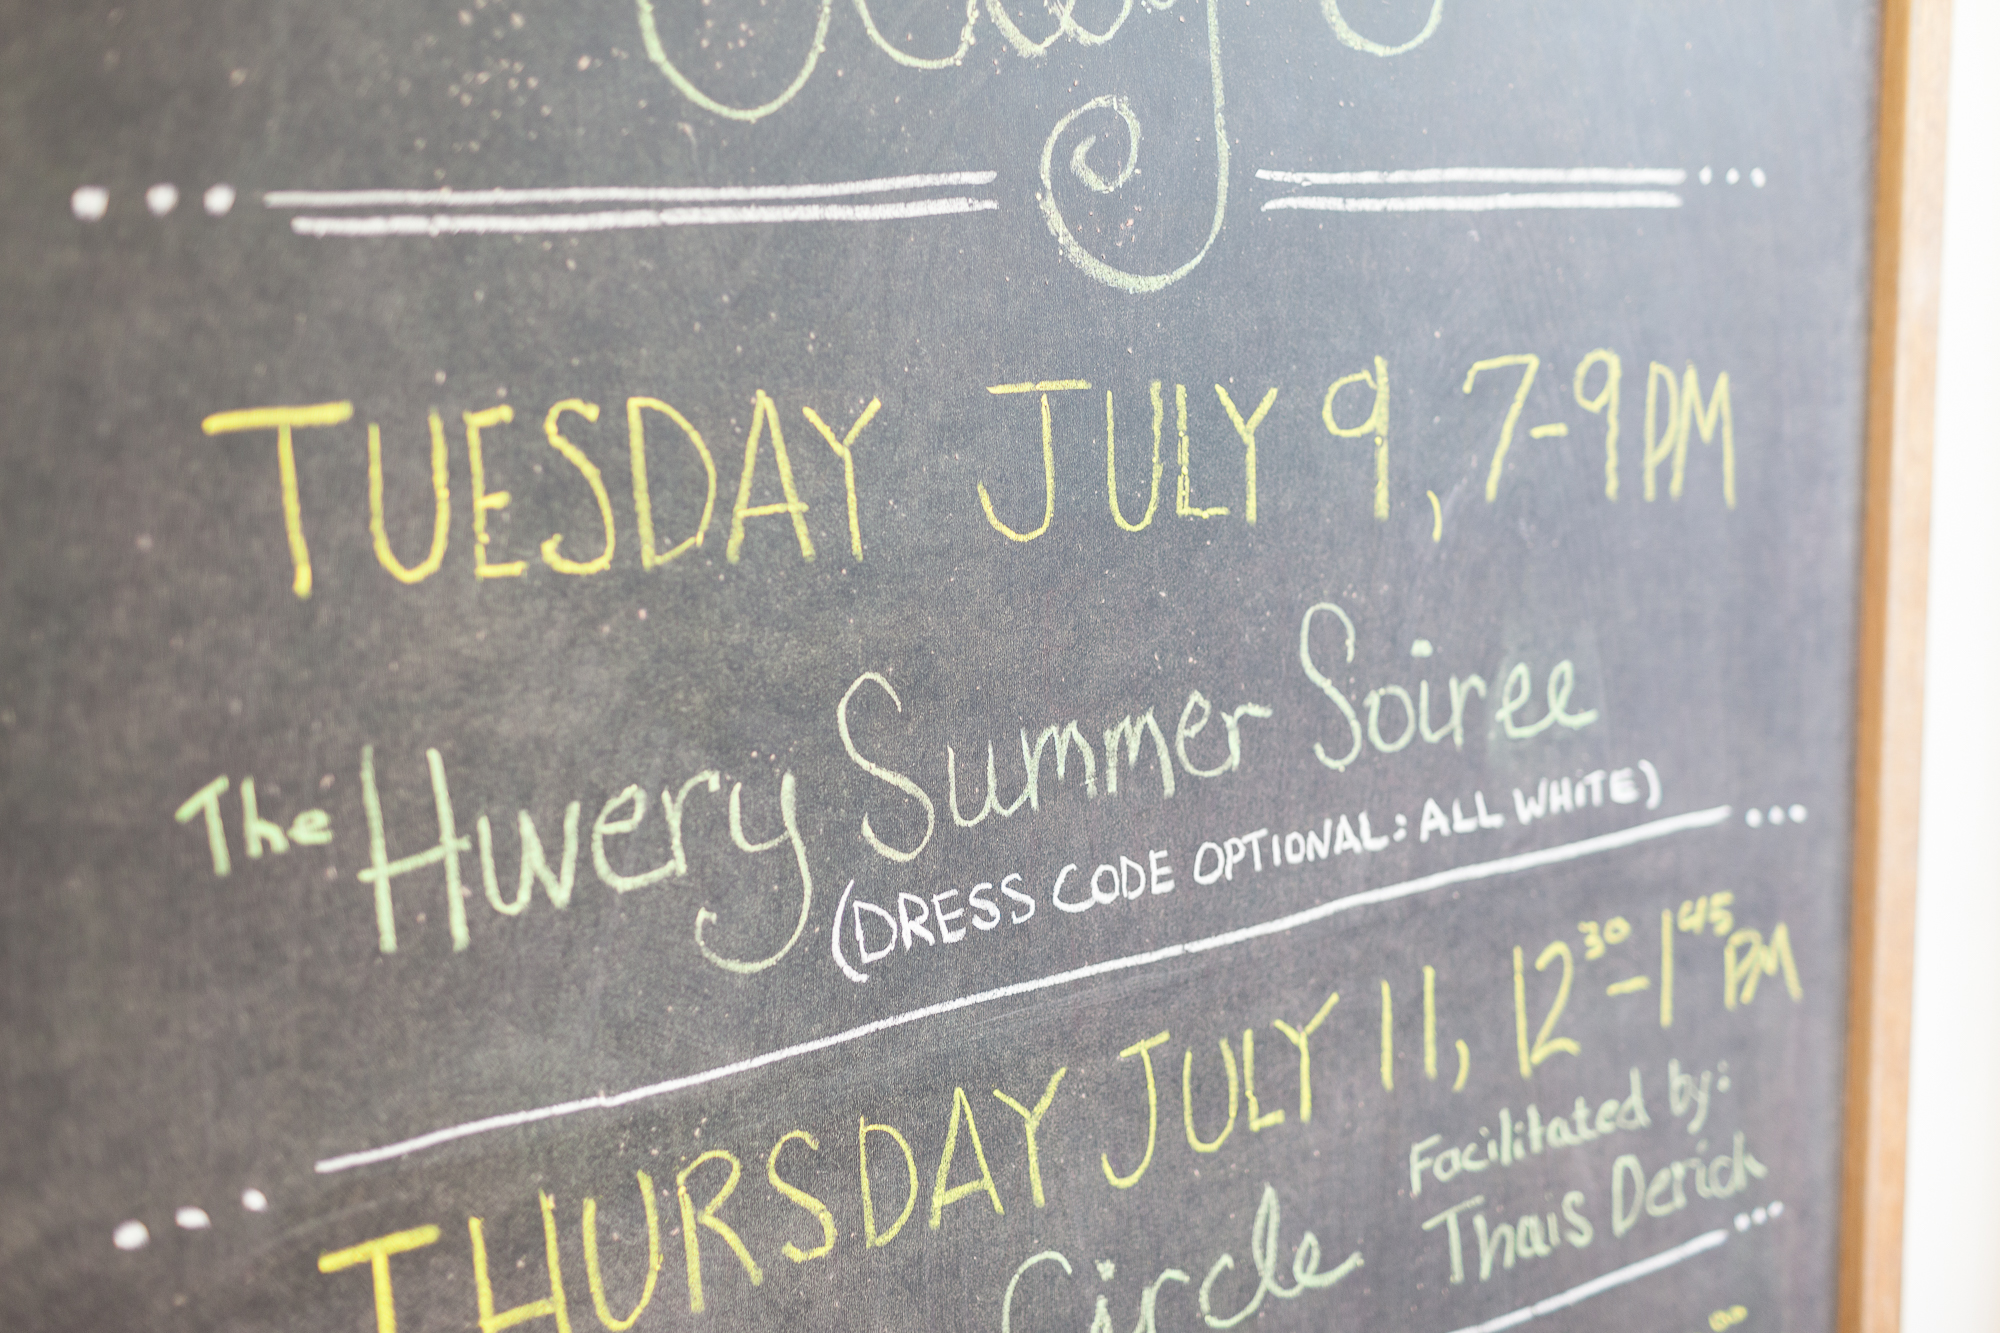 HiveryCircleSoiree_Jul2019_036.jpg